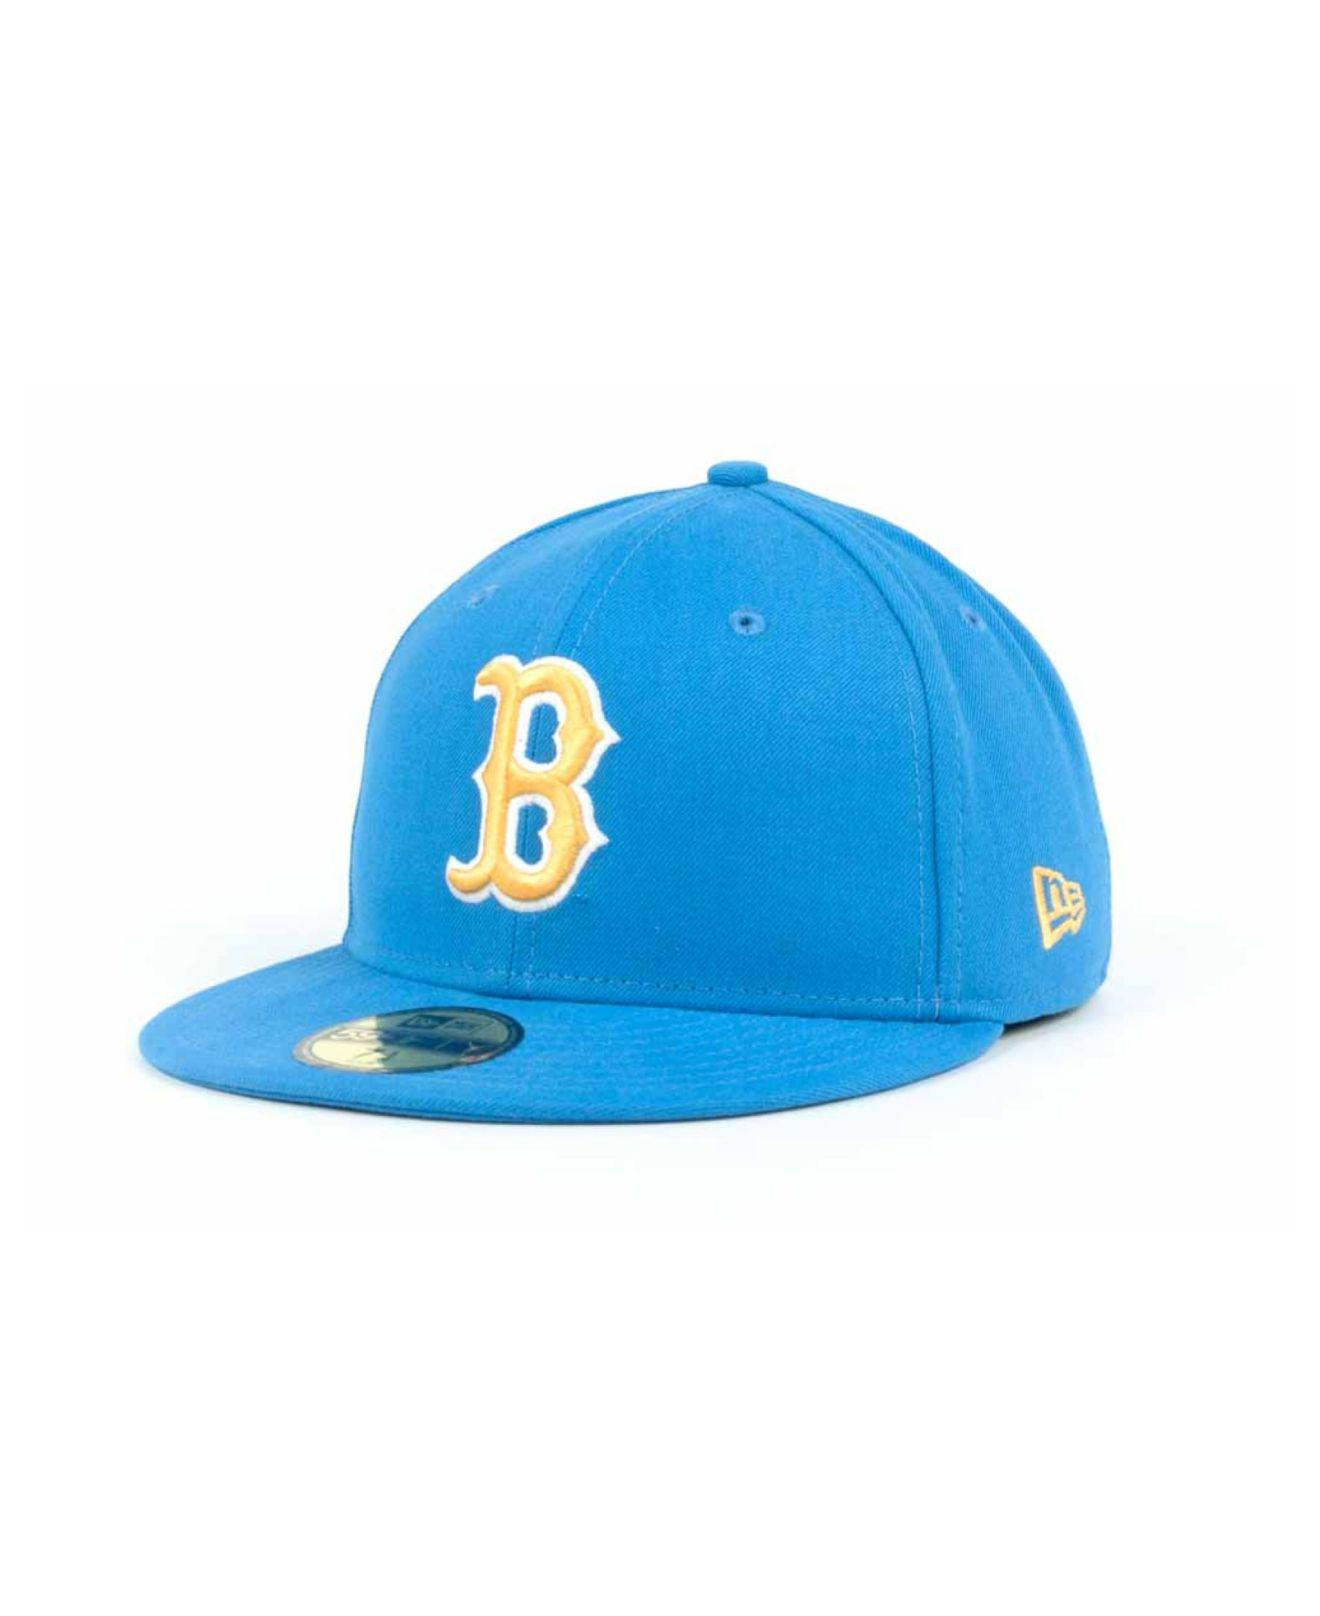 new style 0a5dd 917a0 KTZ. Men s Blue Ucla Bruins 59fifty Cap